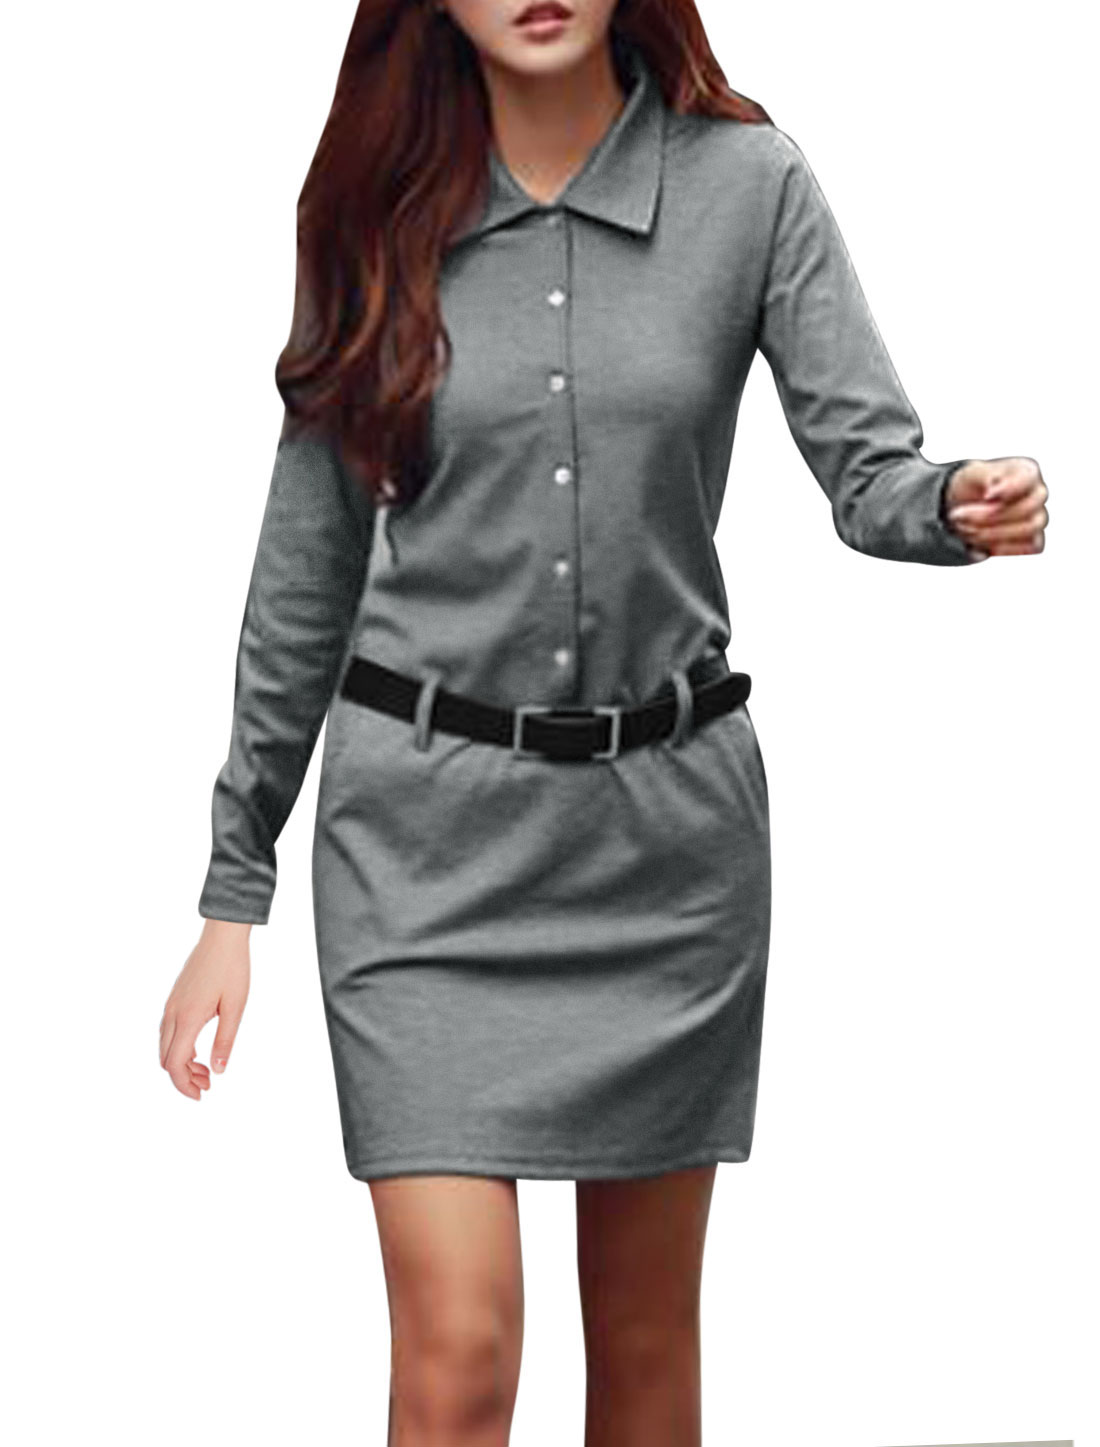 Lady Pullover Belt Loop Double Slant Pockets Leisure Short Dress Gray S